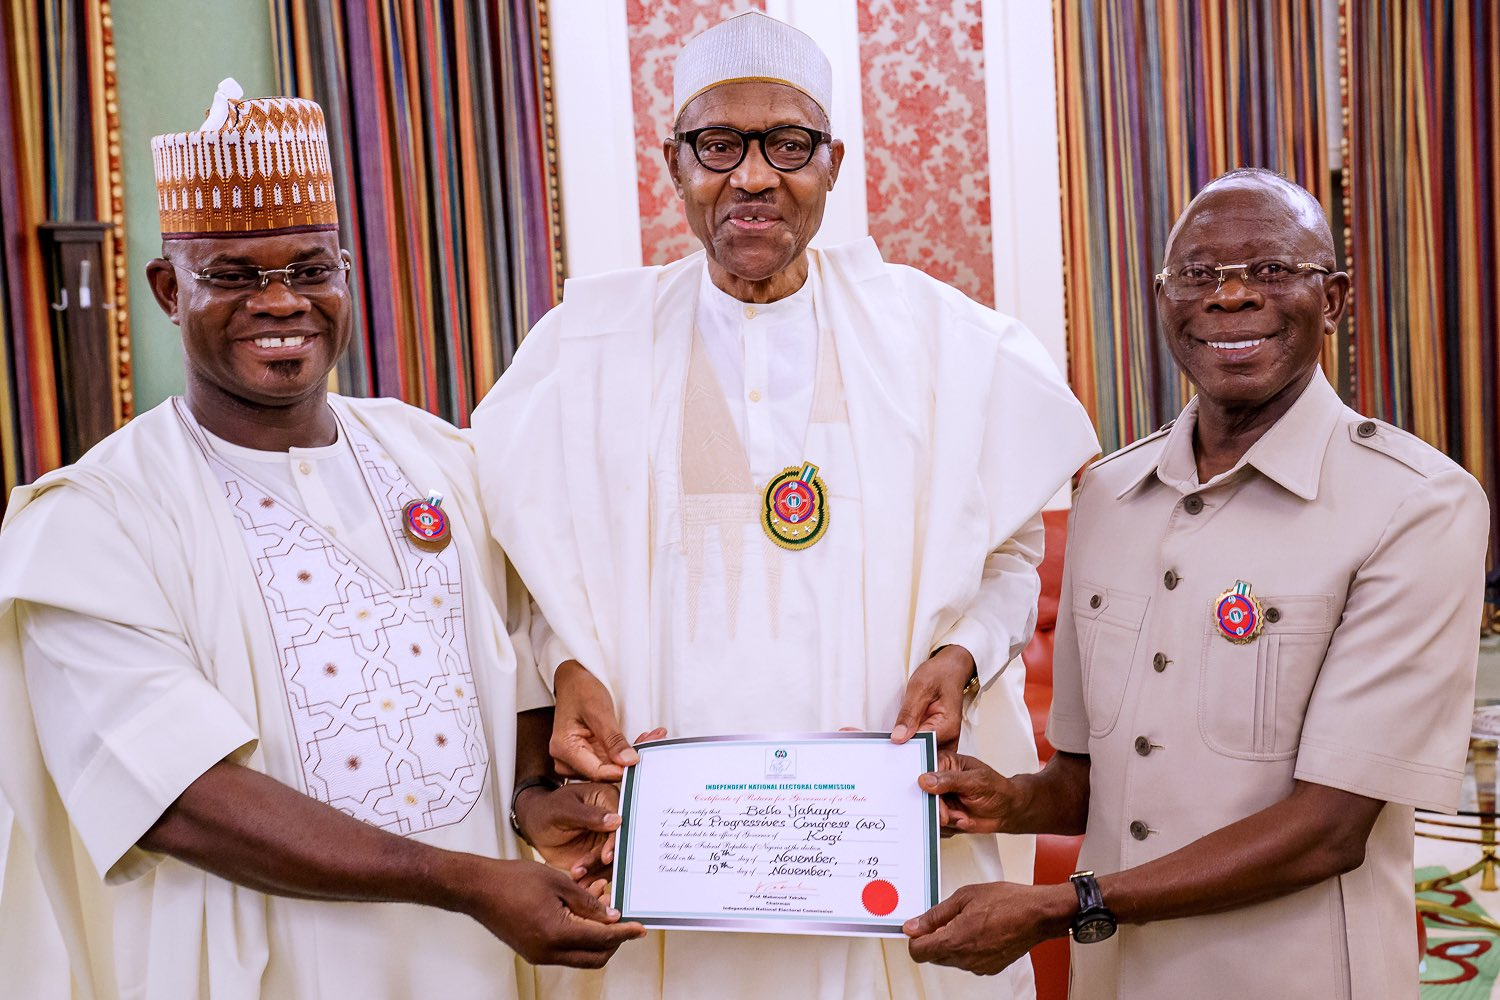 Gov. Yahaya Bello Of Kogi, Has Felicitated With Mr Adams Oshiomhole, National Chairman Of The All Progressives Congress (apc), On The Occasion Of His 68th Birthday Anniversary Celebration. In A St